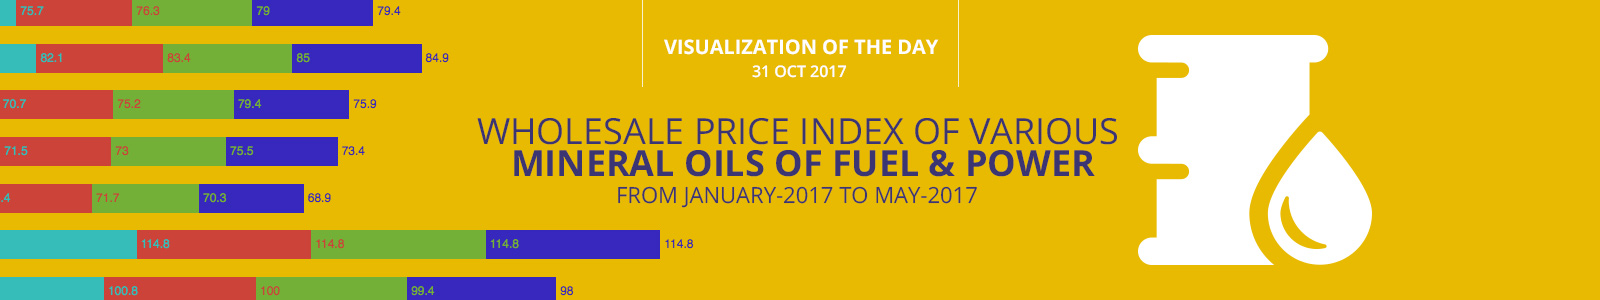 Wholesale Price Index of various Mineral oils of Fuel